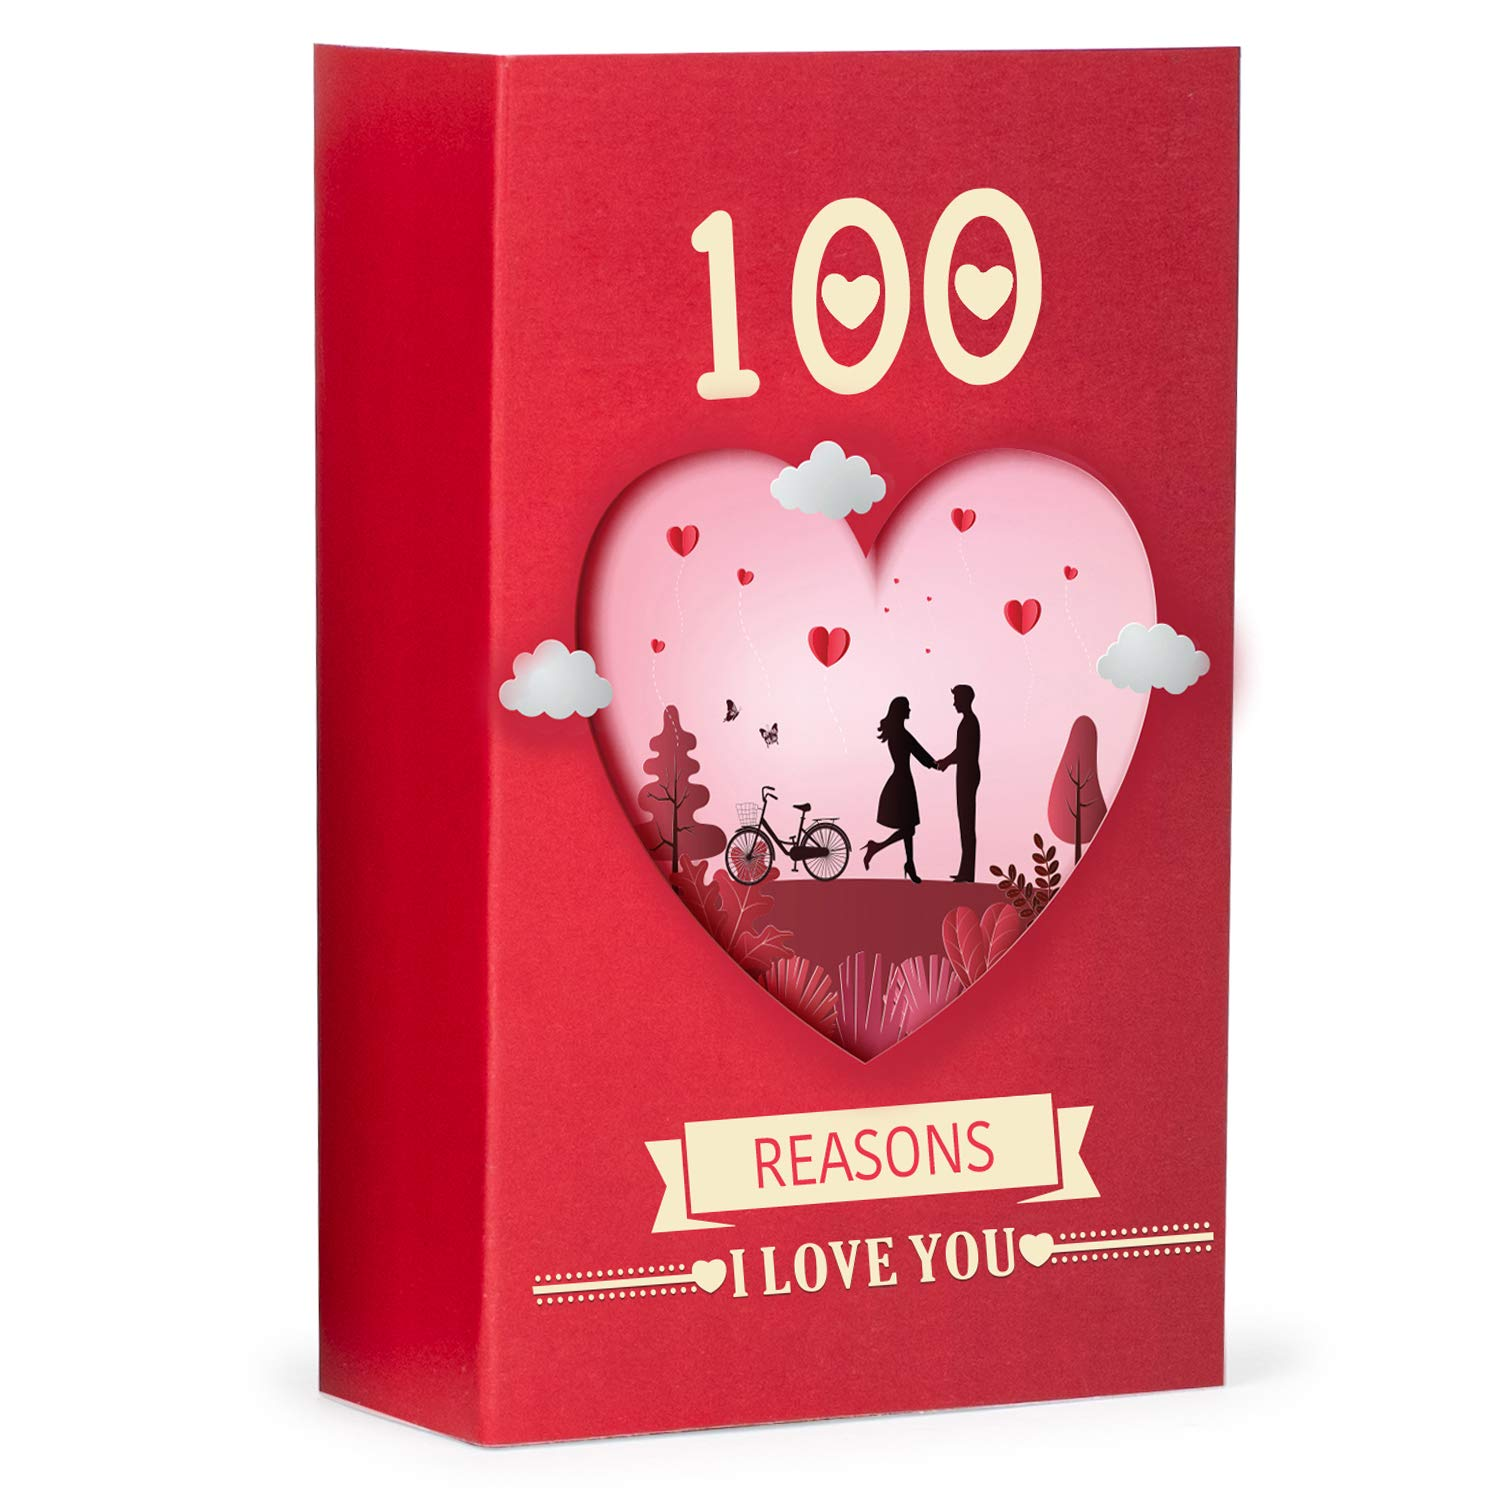 100 Reasons I Love You: Romantic Gift Box with Love Messages for Couples